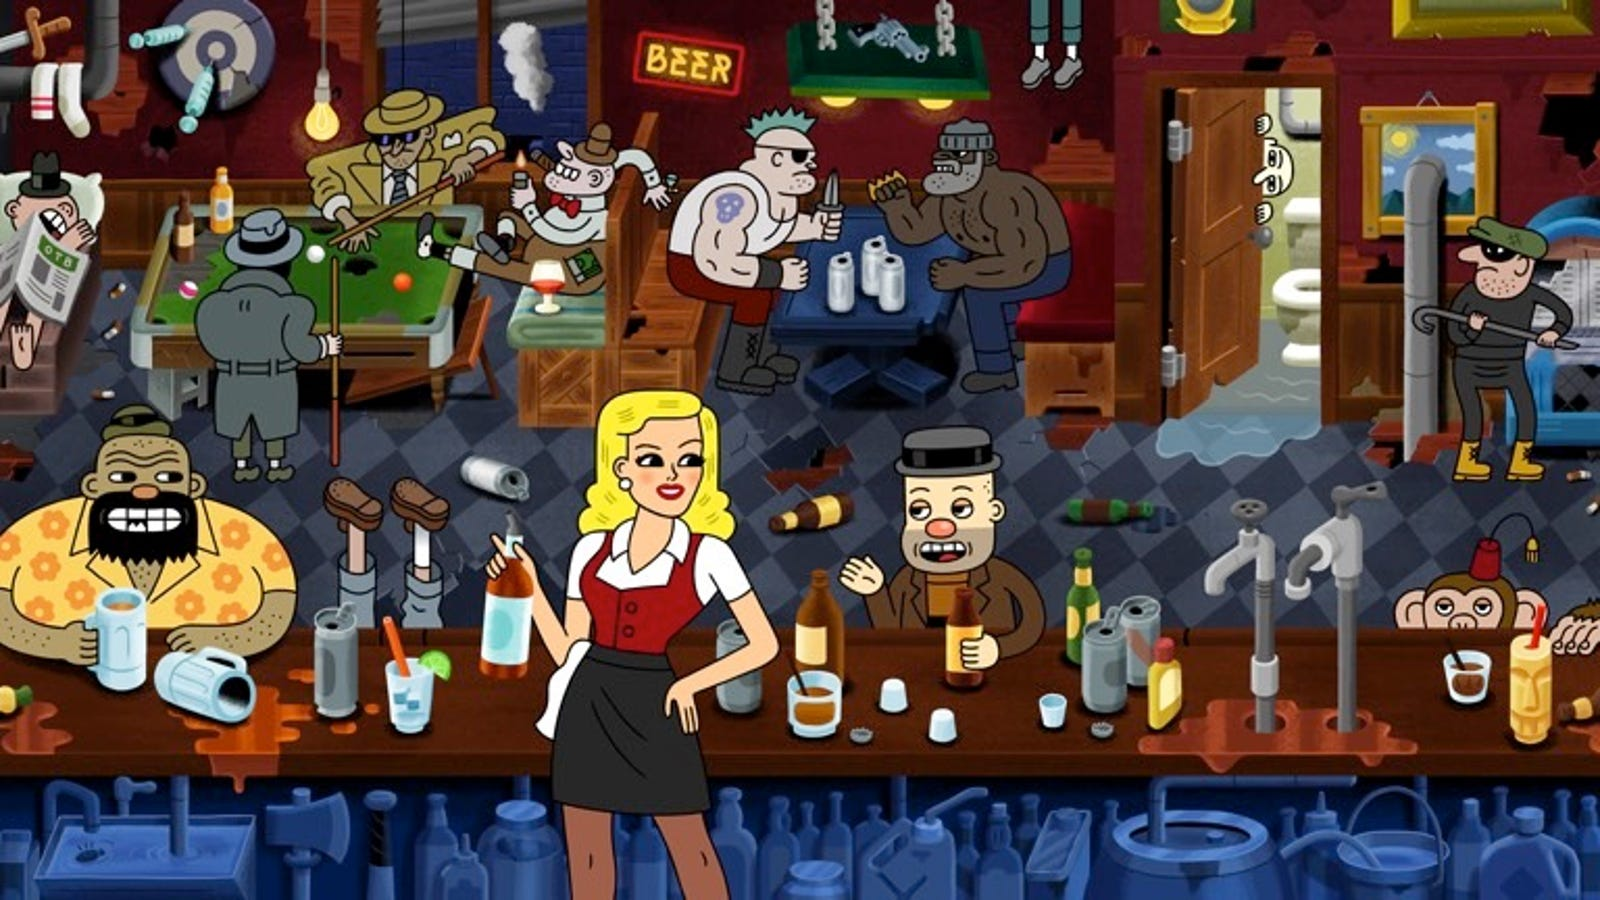 The Adventures of Drunky Is the R-Rated Animated Comedy We've Been Waiting For